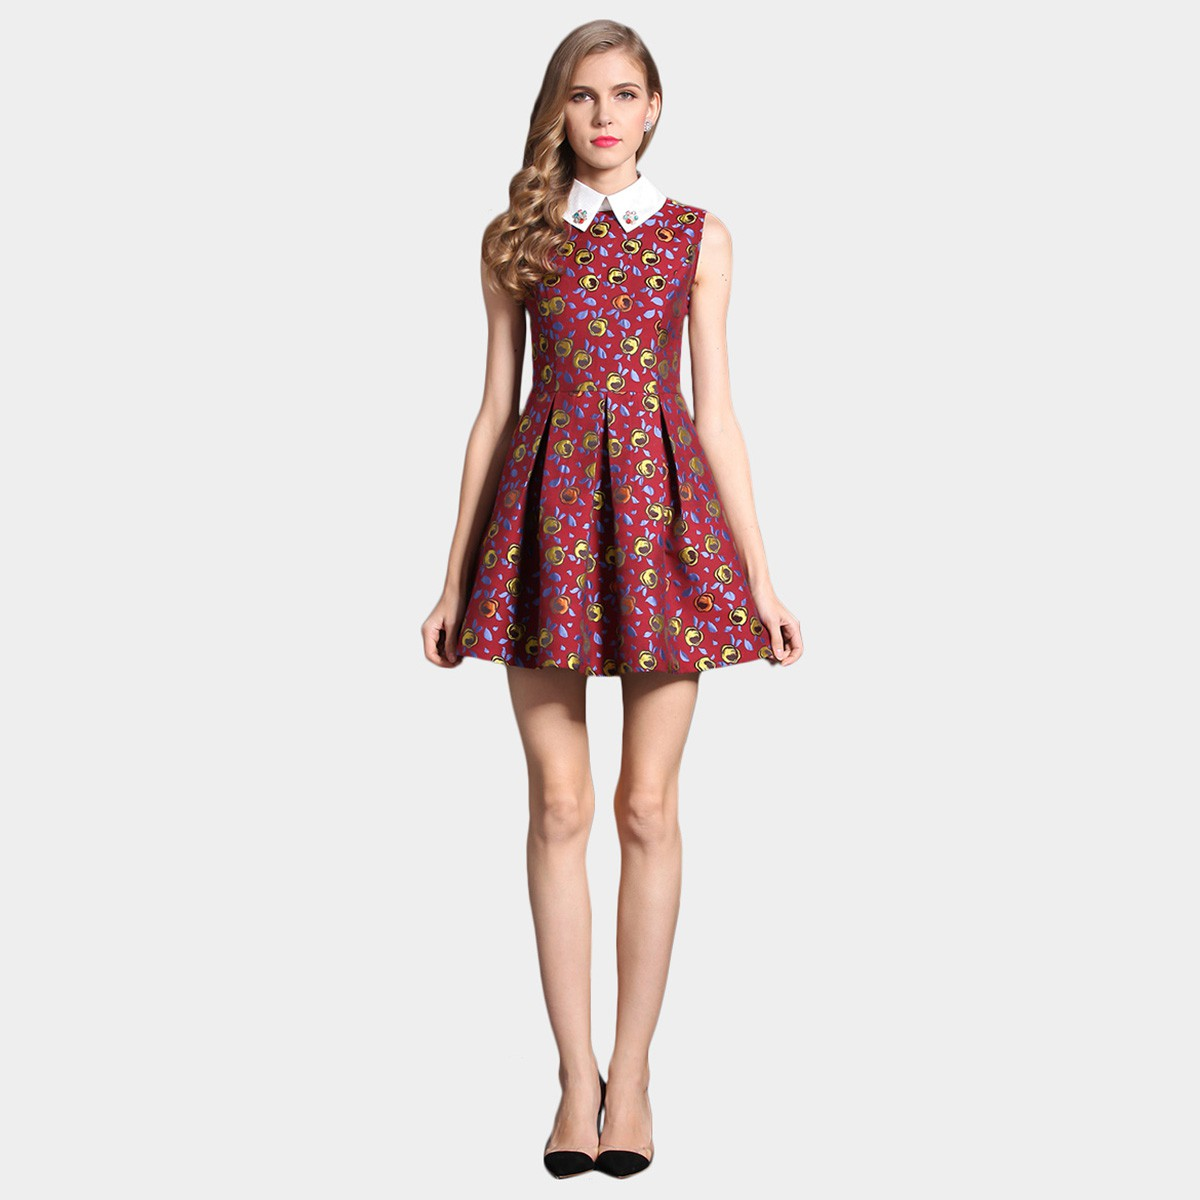 04fceef62d04c SSXR Rainbow Roses Embroidered Collar Mini Red Dress (5178) - 0cm